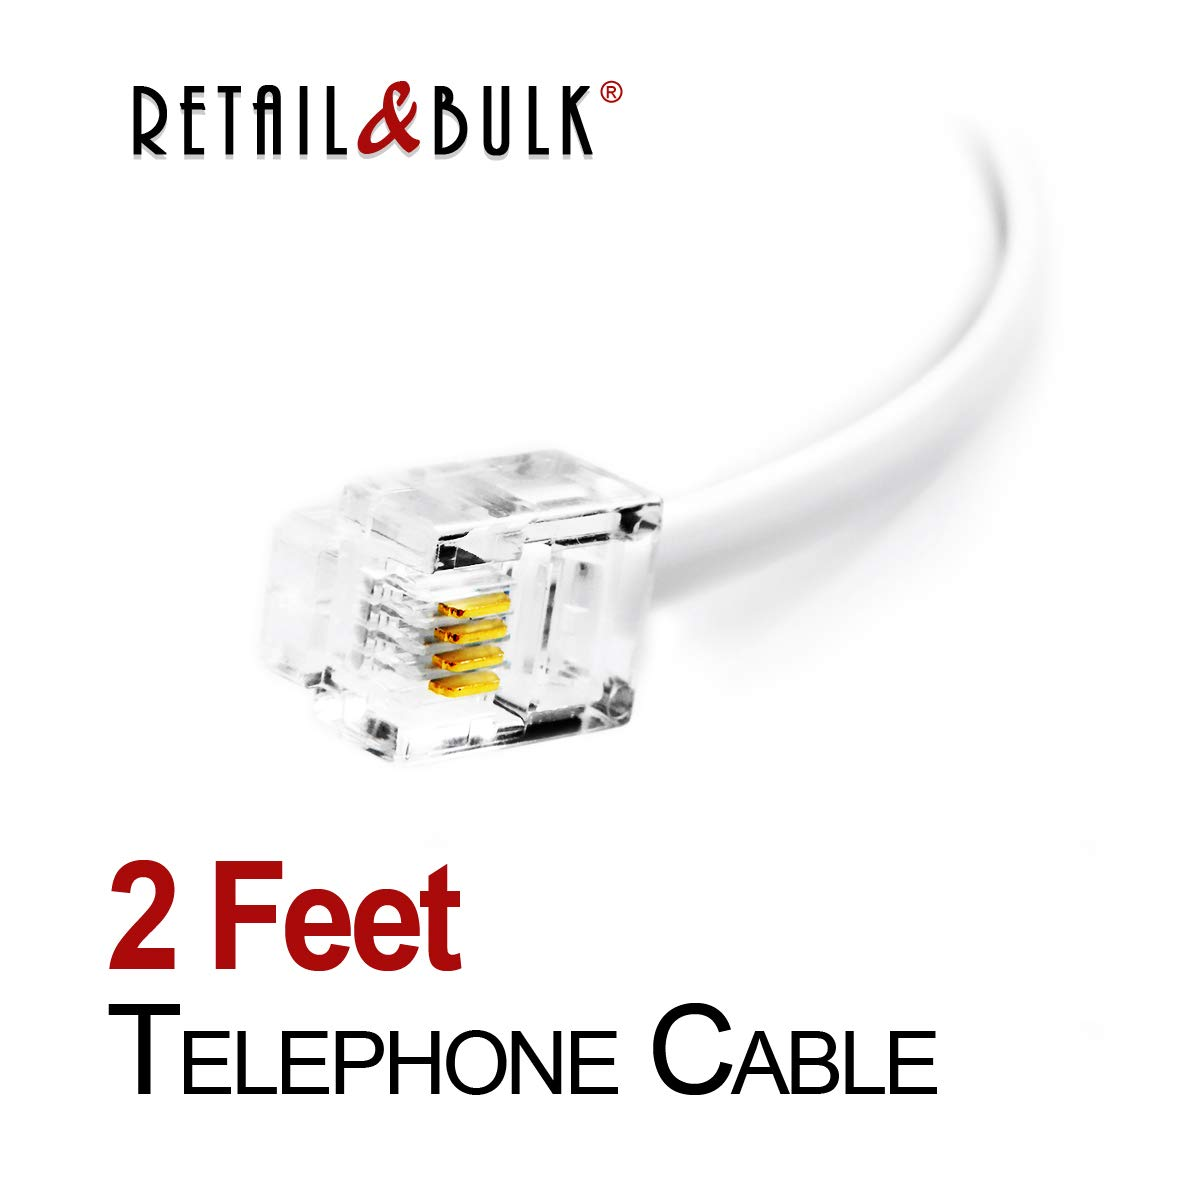 12 Inch Premium Quality Telephone Cable, RJ11 Male to Male 6P4C Phone Line Cord. Made in USA by Retail&Bulk (White) RetailAndBulk